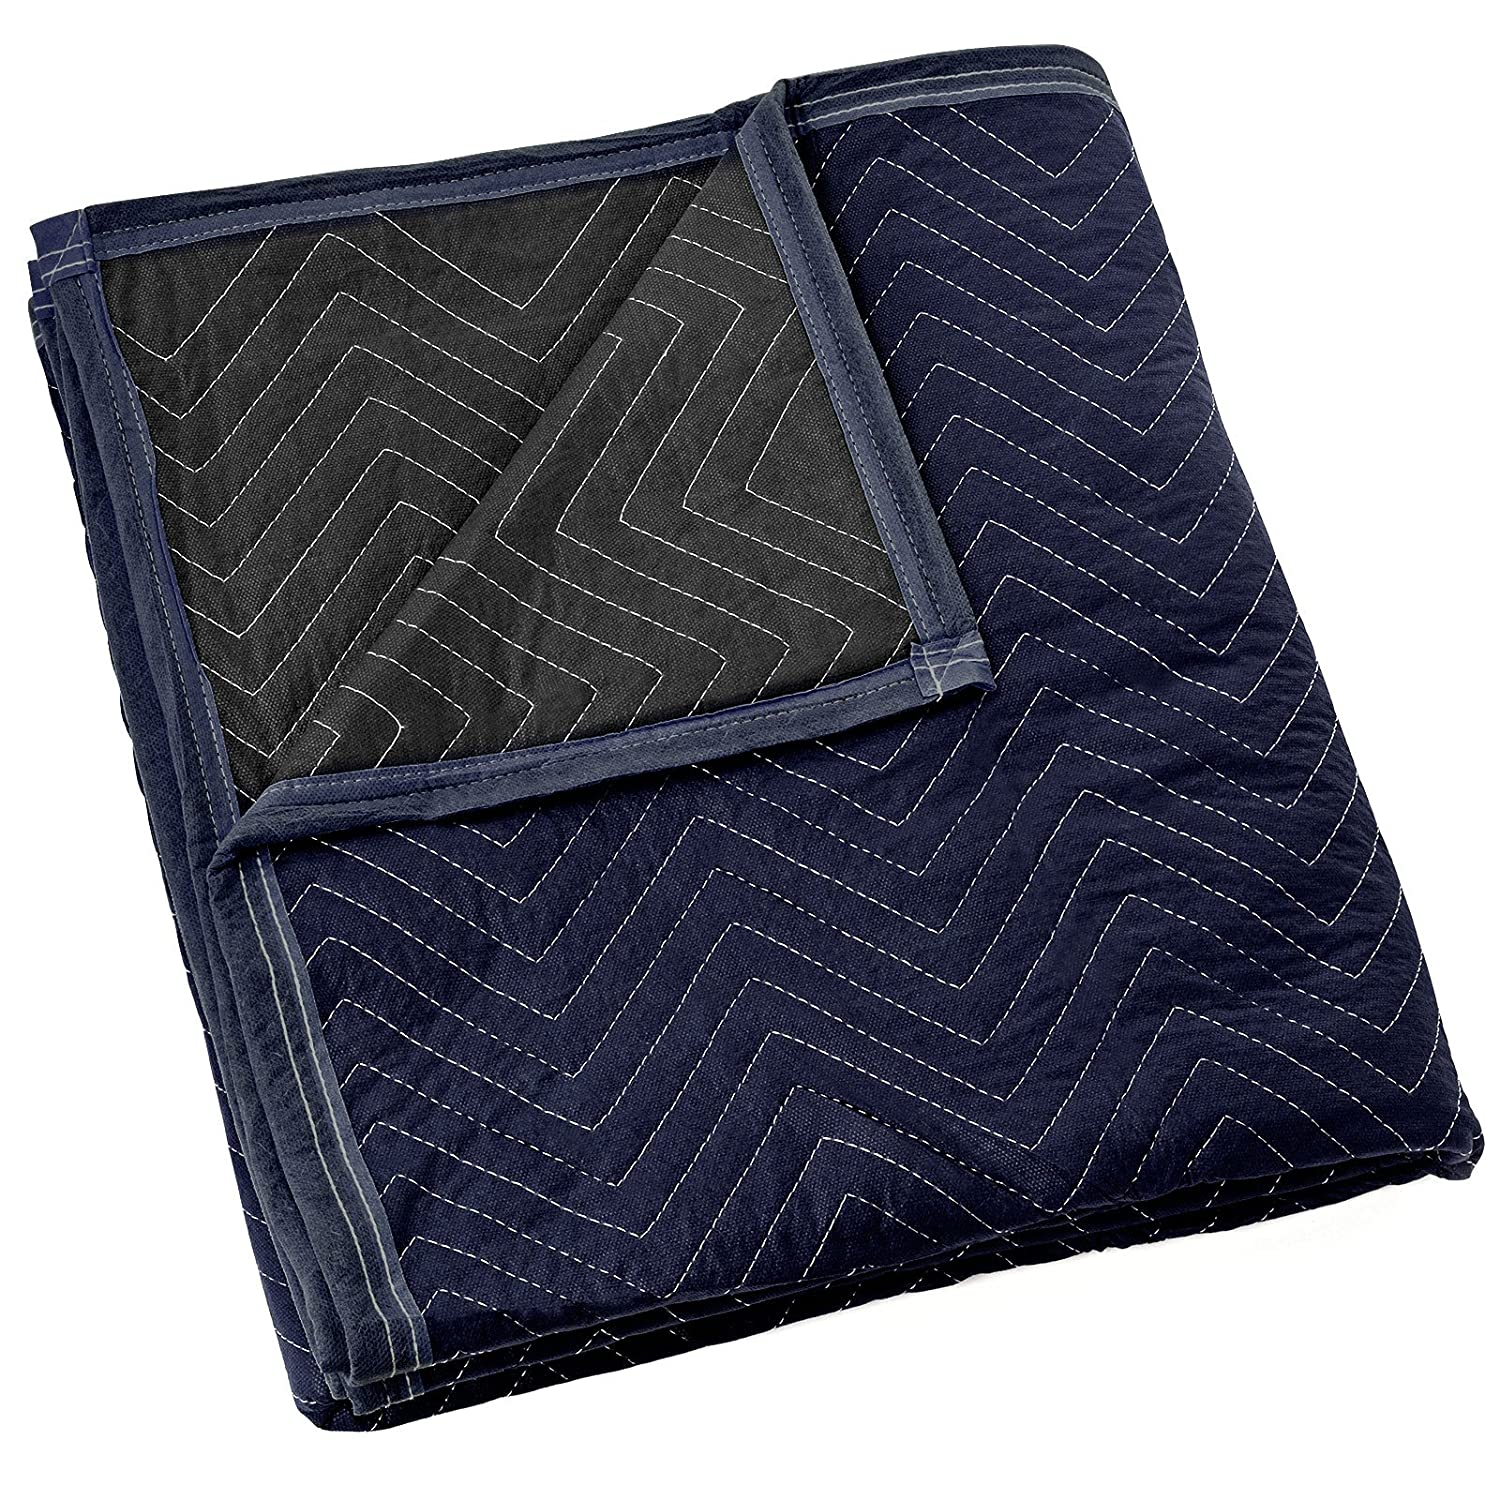 "Sure-Max Moving & Packing Blanket - Pro Economy - 80"" x 72"" (35 lb/dz weight) - Professional Quilted Shipping Furniture Pad Navy Blue and Black - 1 Blanket"